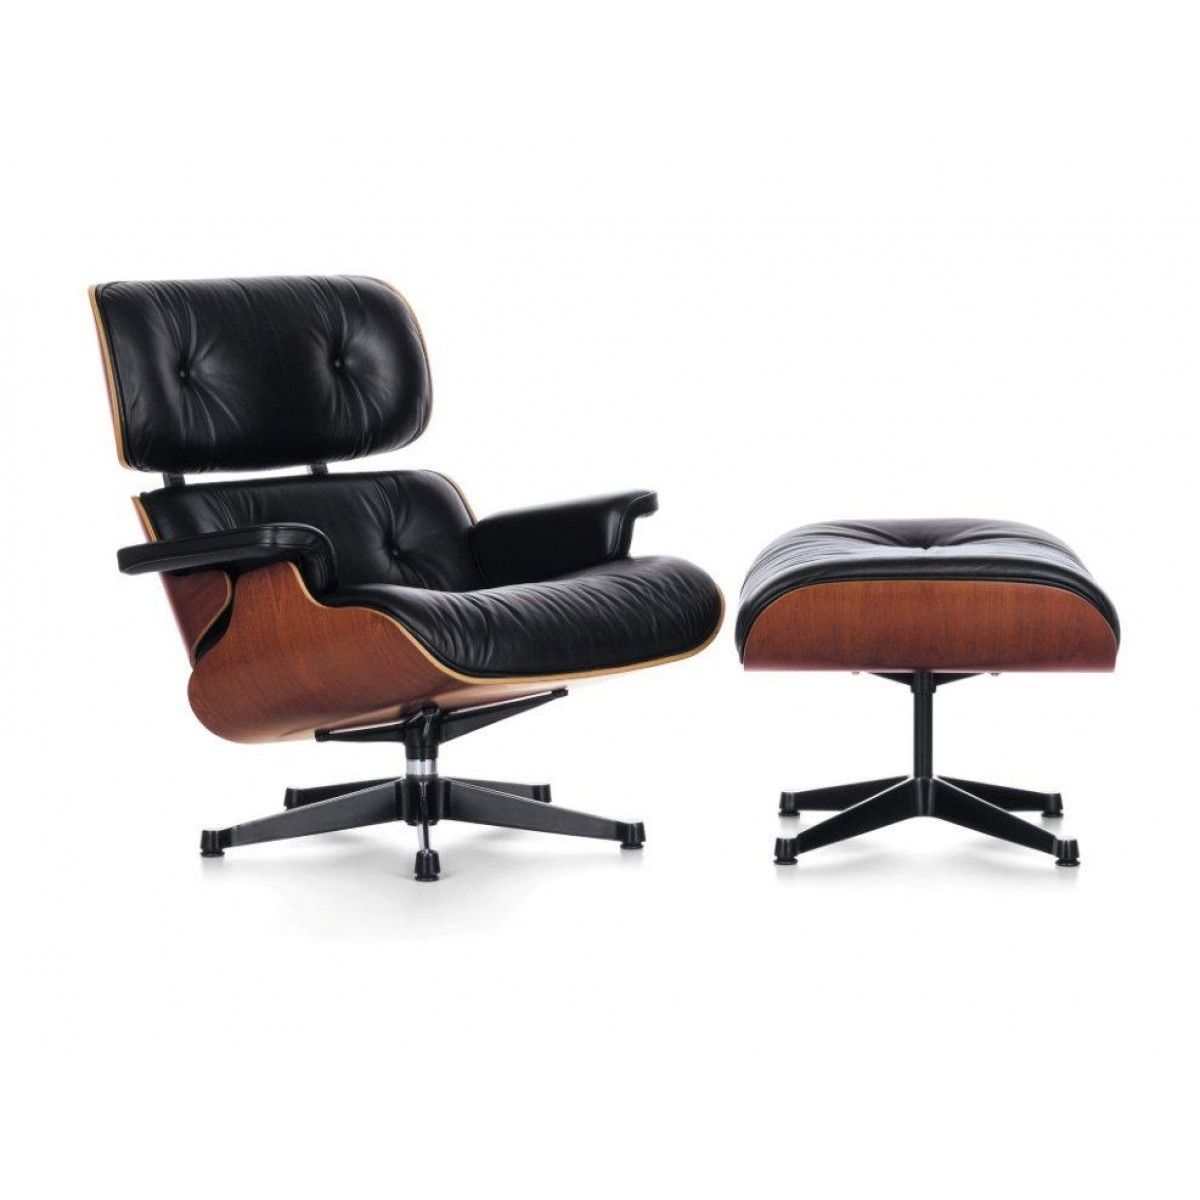 Vitra Sessel Eames Lounge Chair Ottoman Sessel Vitra Interior Inspirations